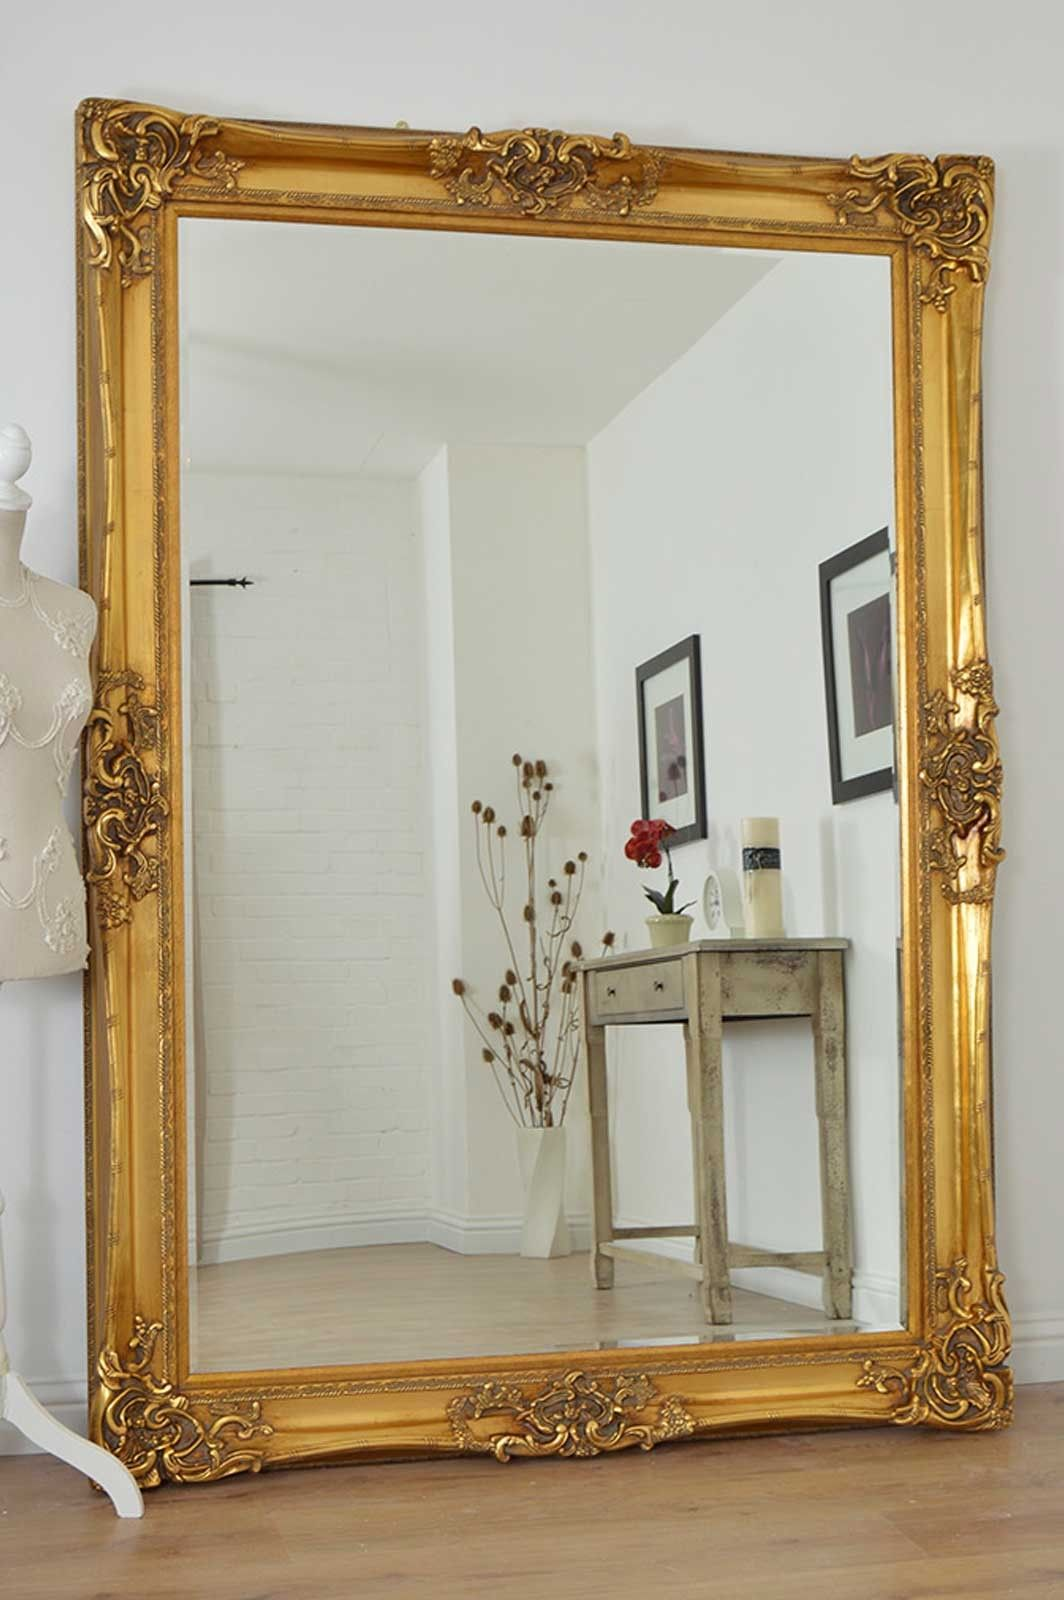 Large gold very ornate antique design wall mirror 7ft x for Oversized mirror